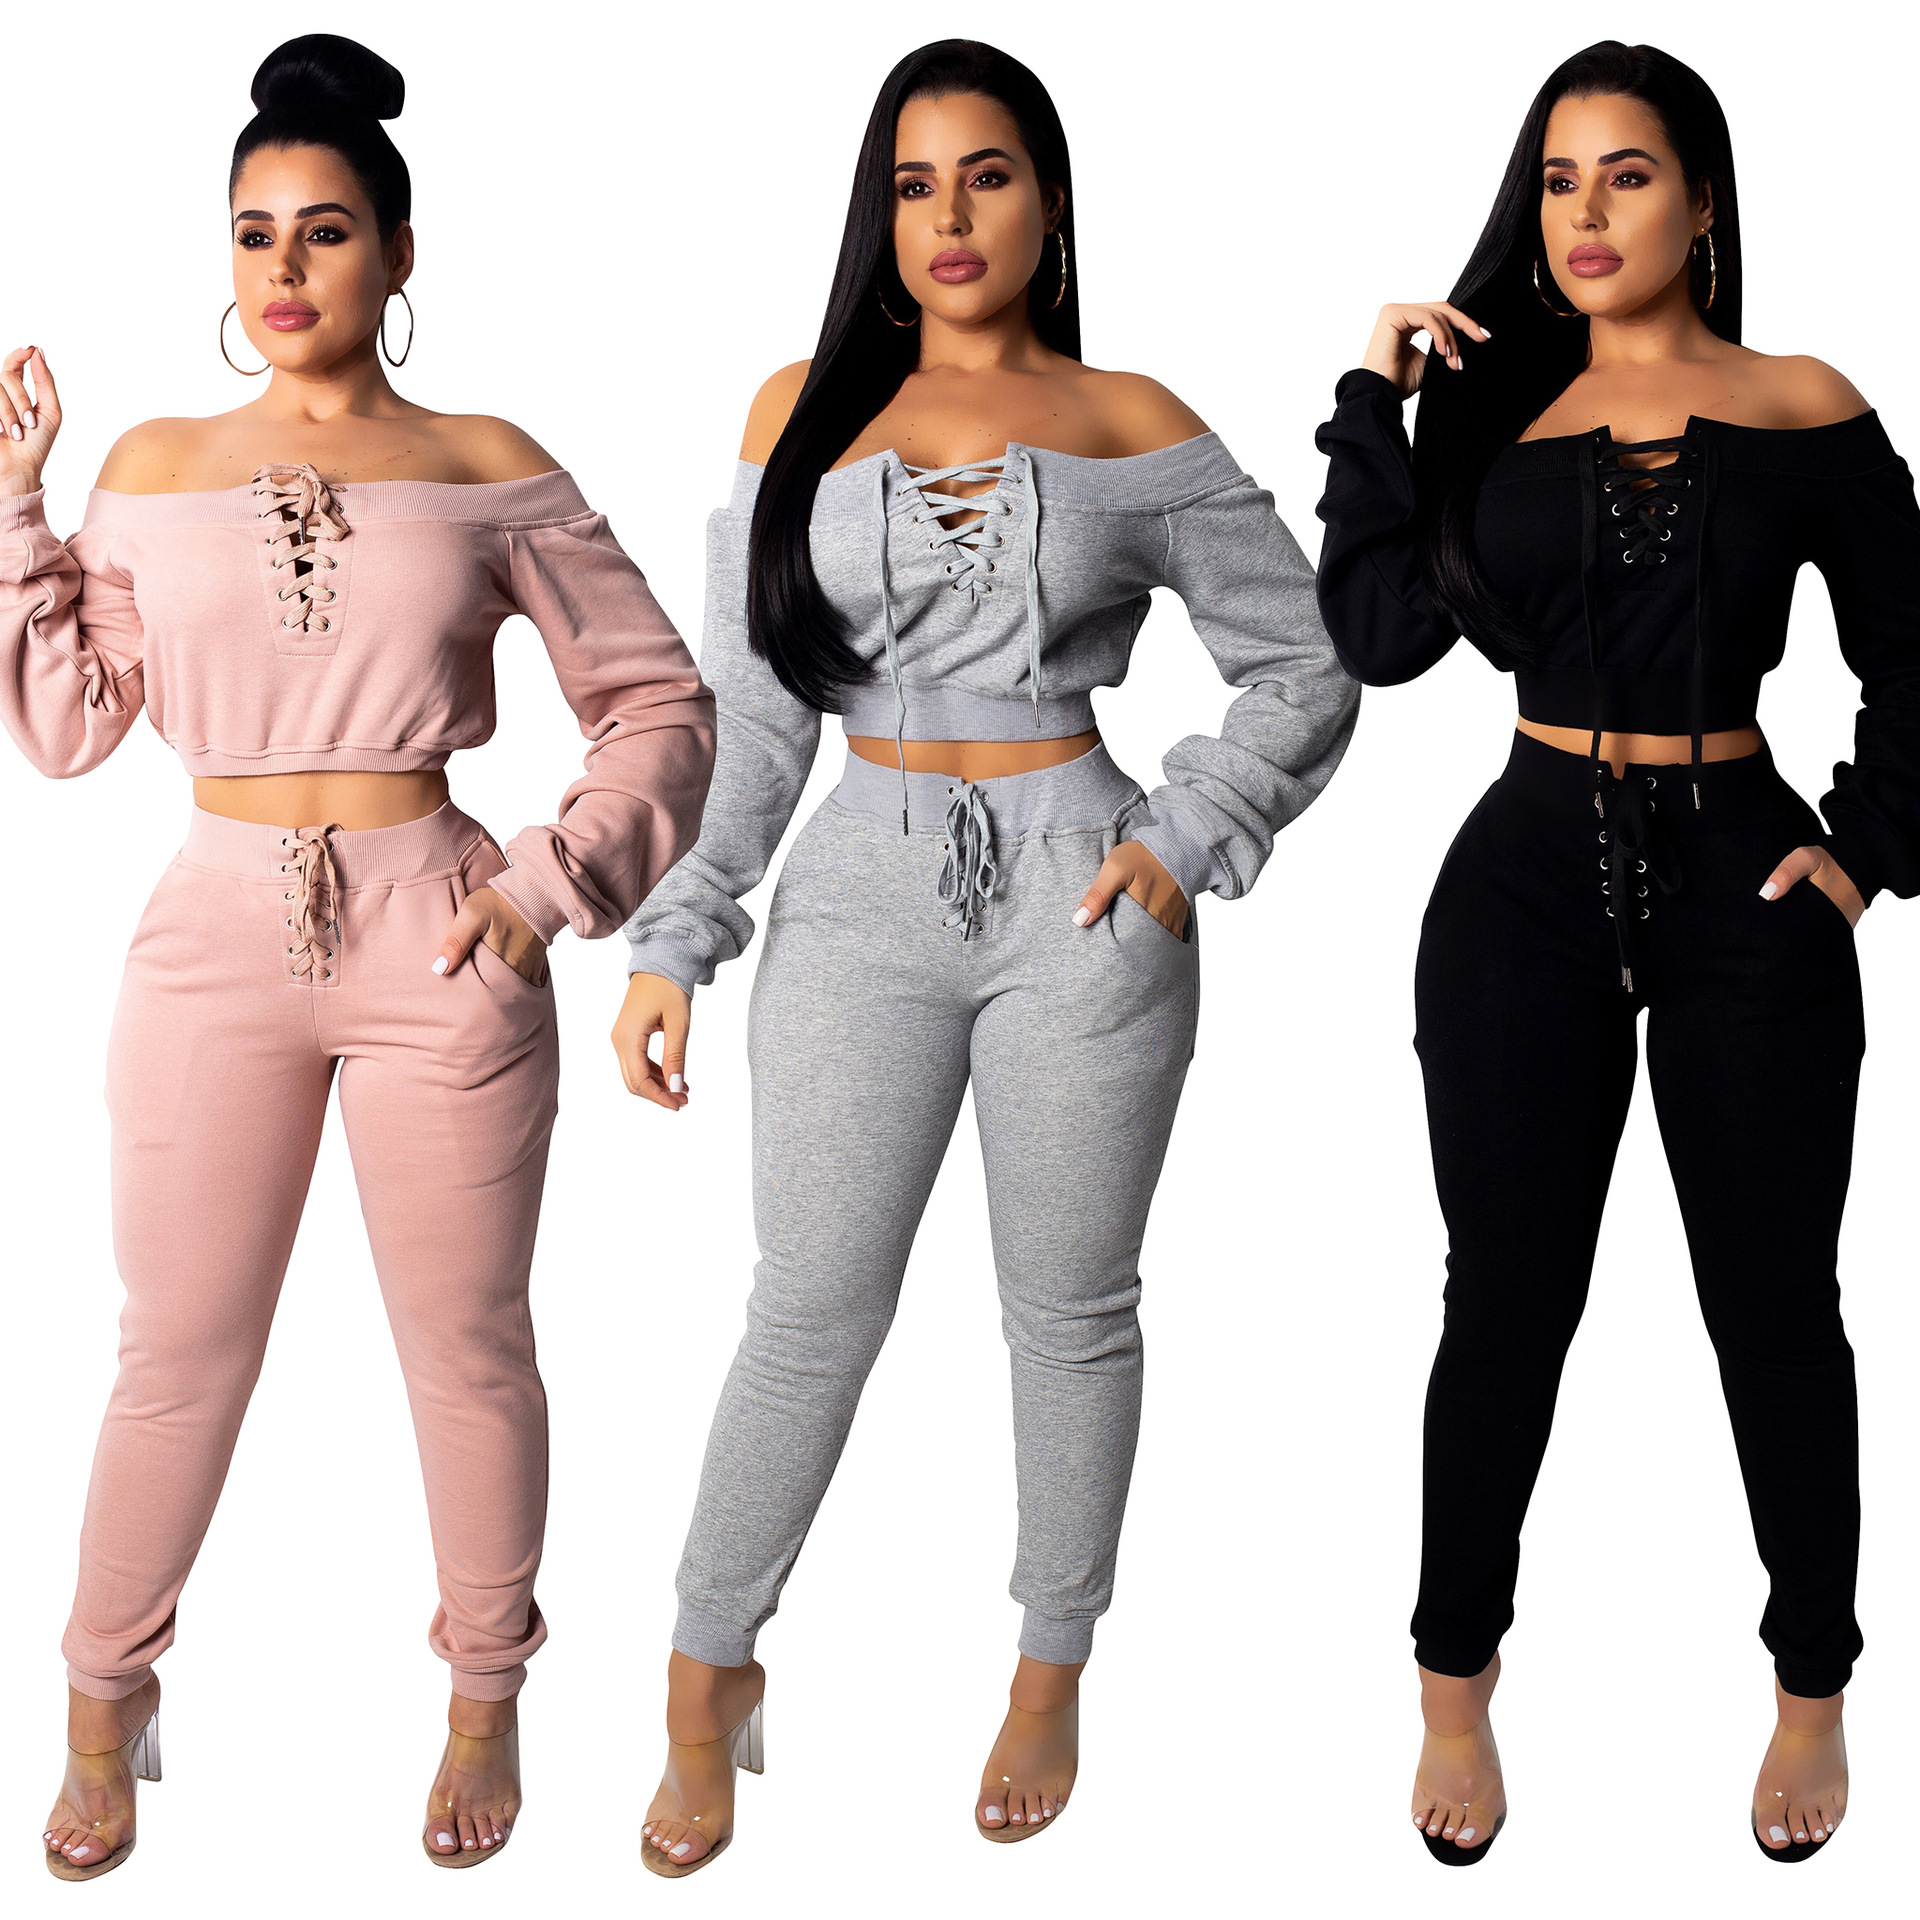 Echoine Autumn Winter Women Two Piece Set Crop Top And Pants Sexy Off-shoudler Grommmet Casual Matching Set Tracksuit Sportwear